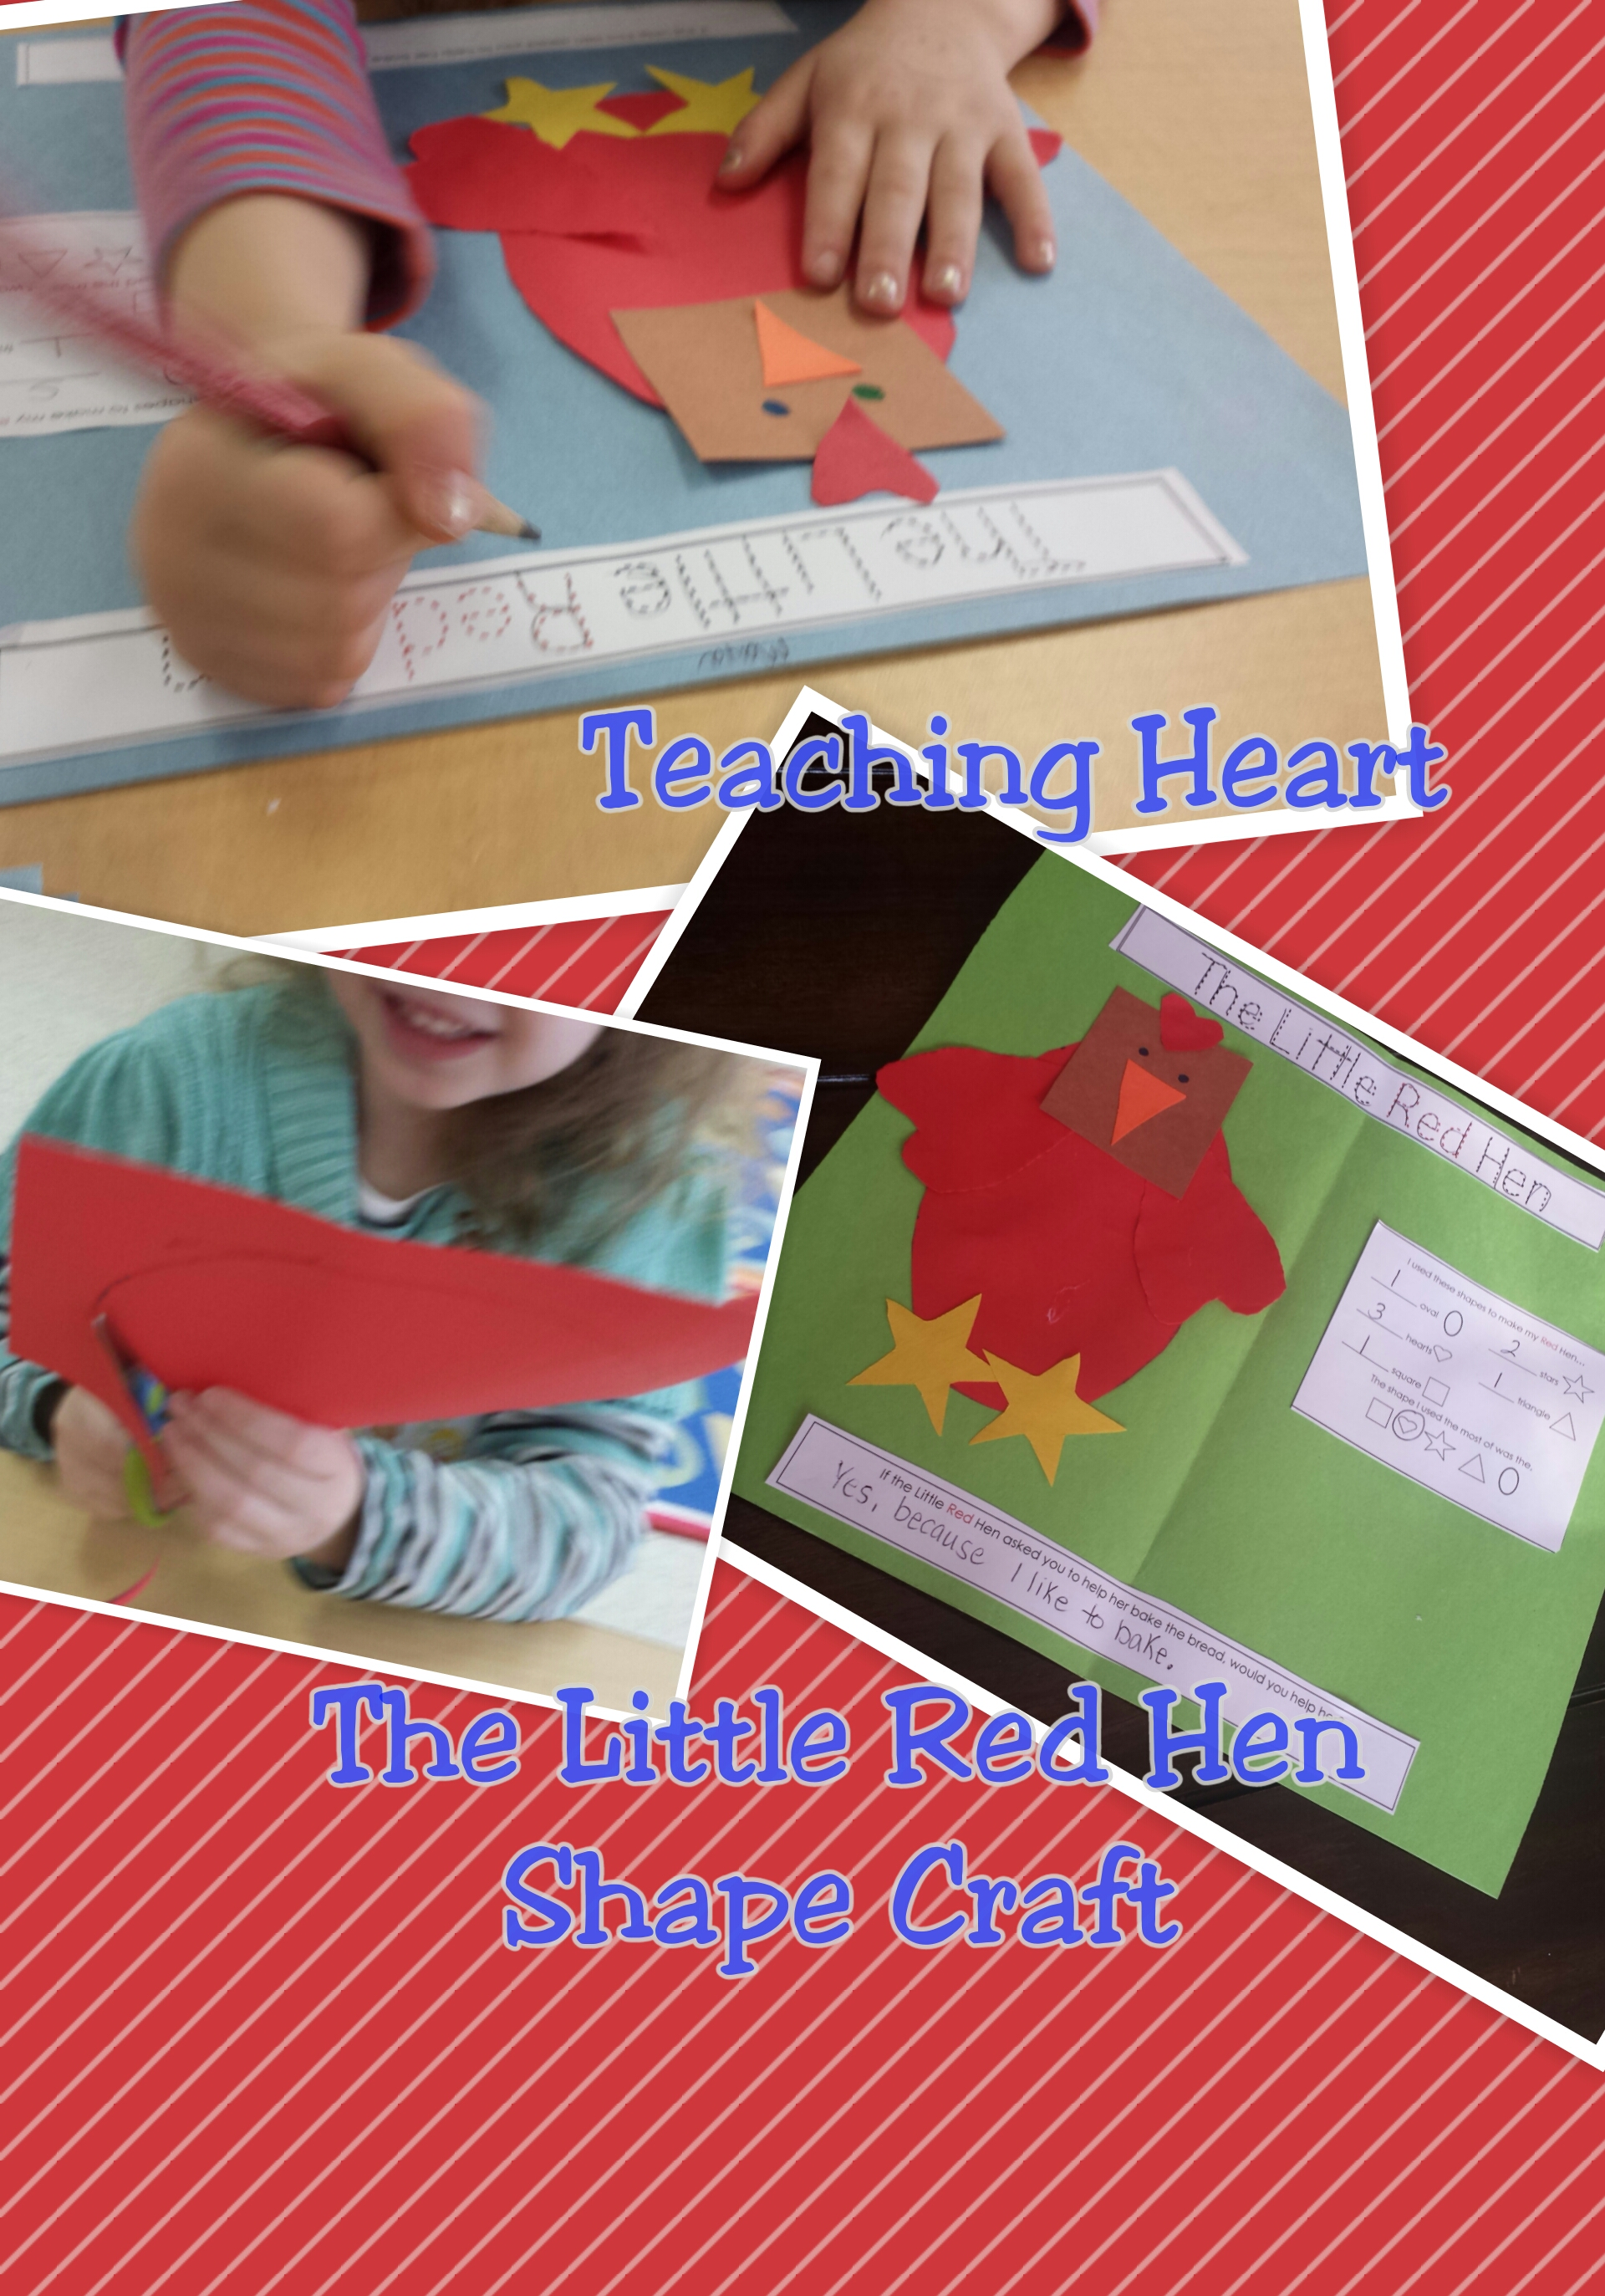 The Little Red Hen Teaching Heart Blog